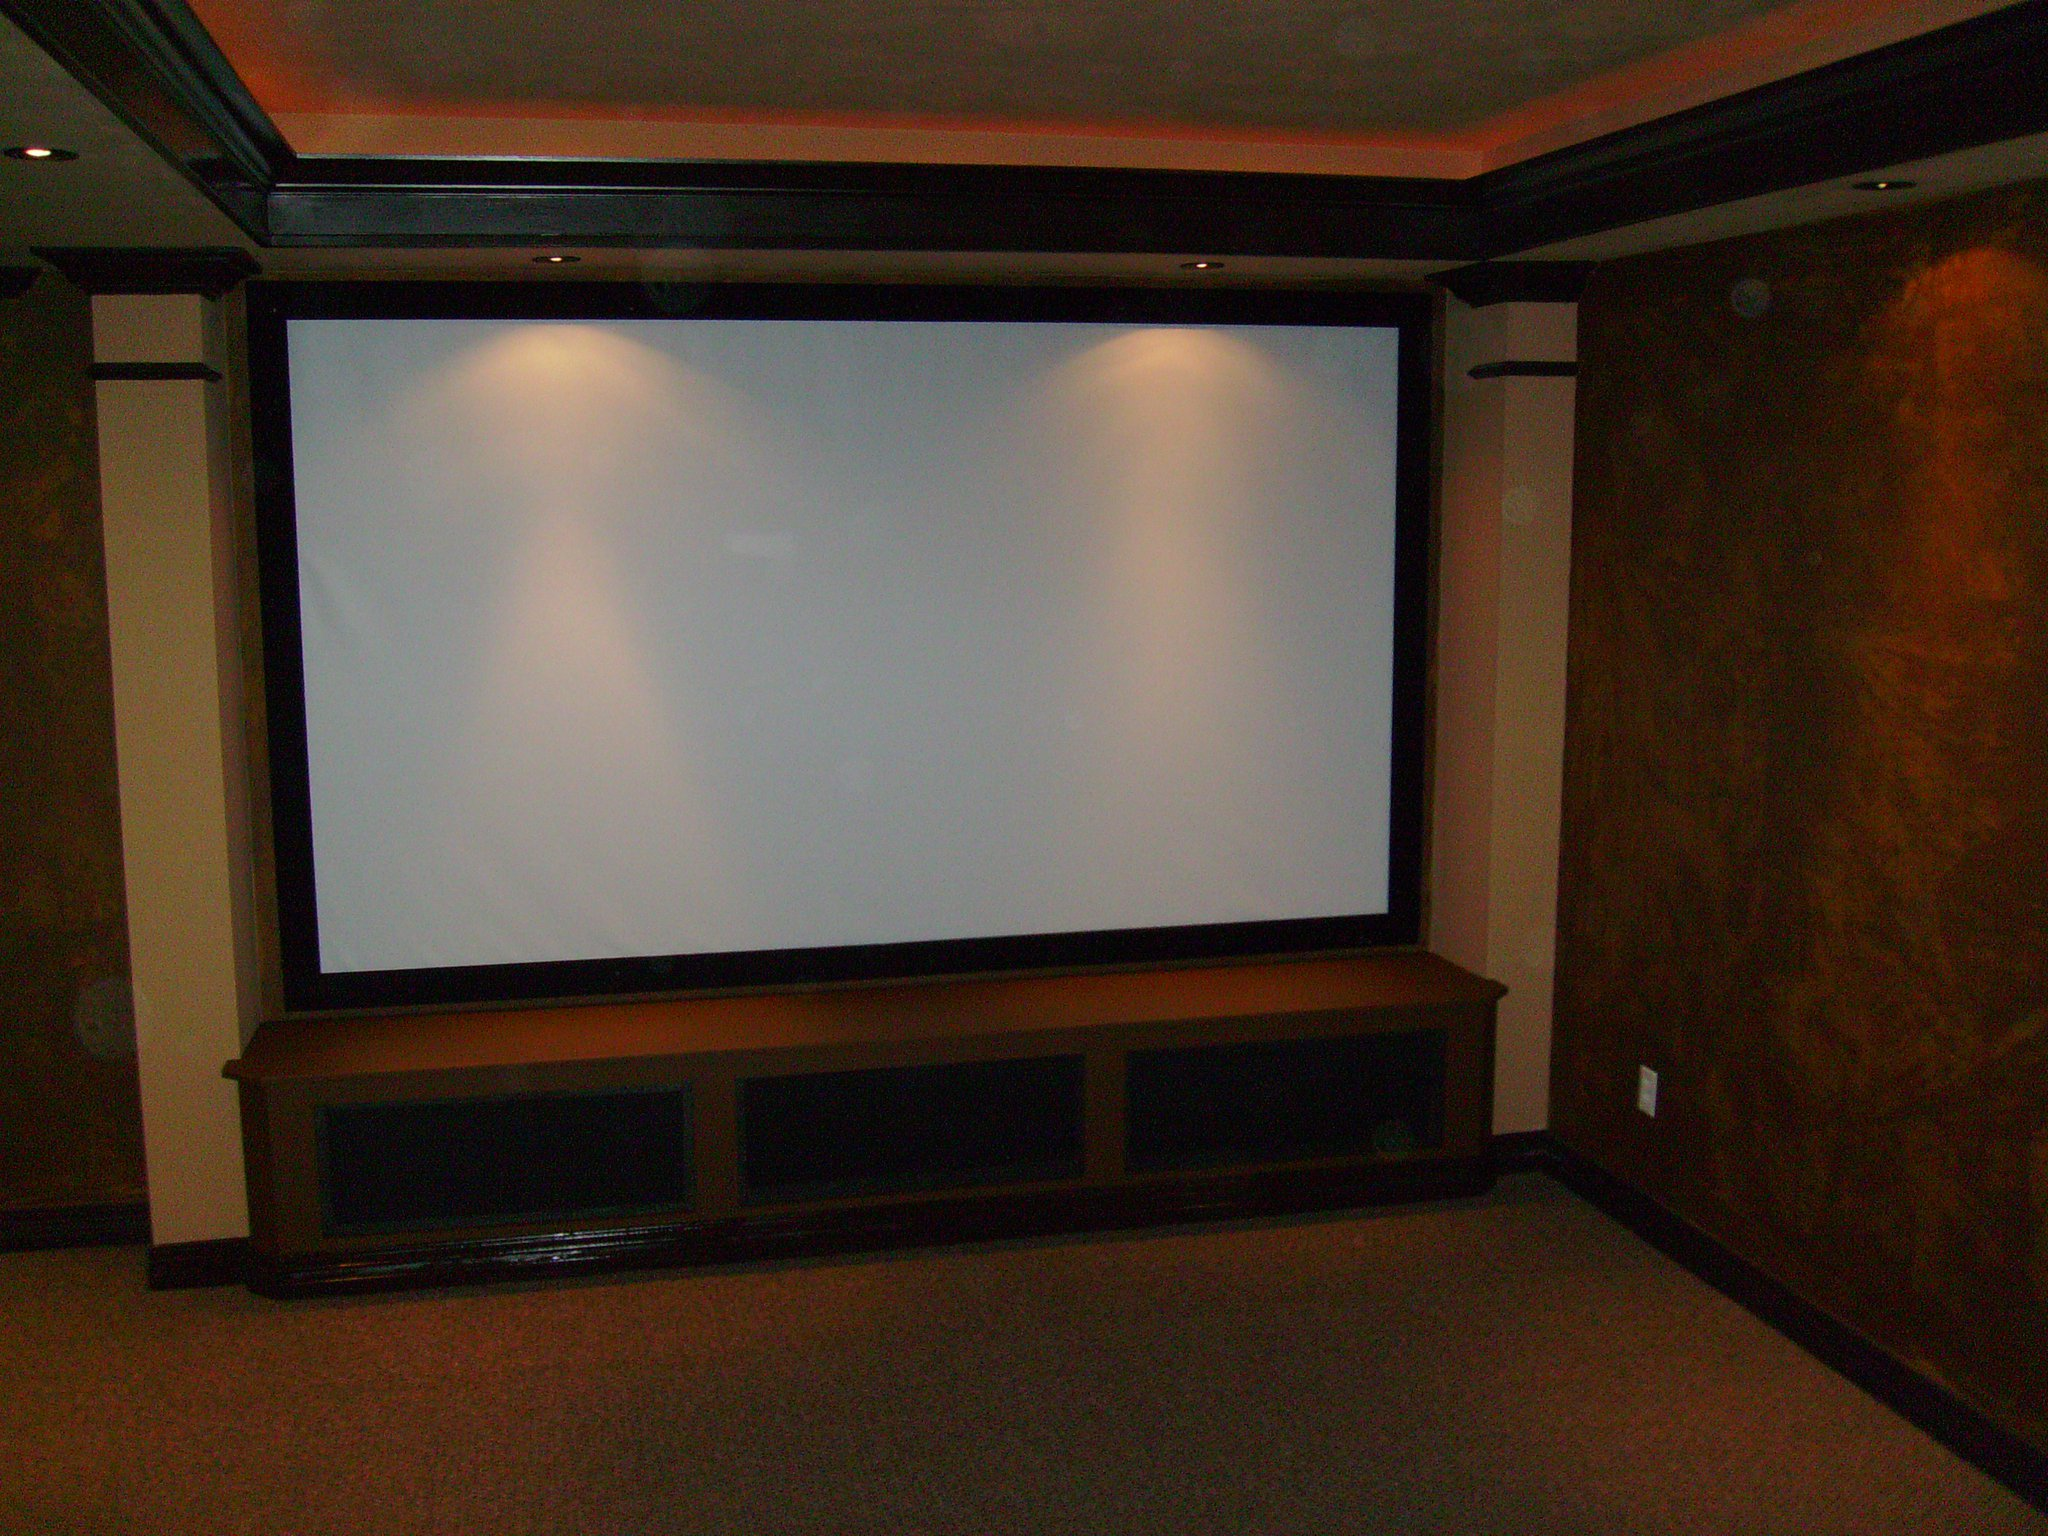 Media rooms with big screen tv interior design company for Home tv room design ideas